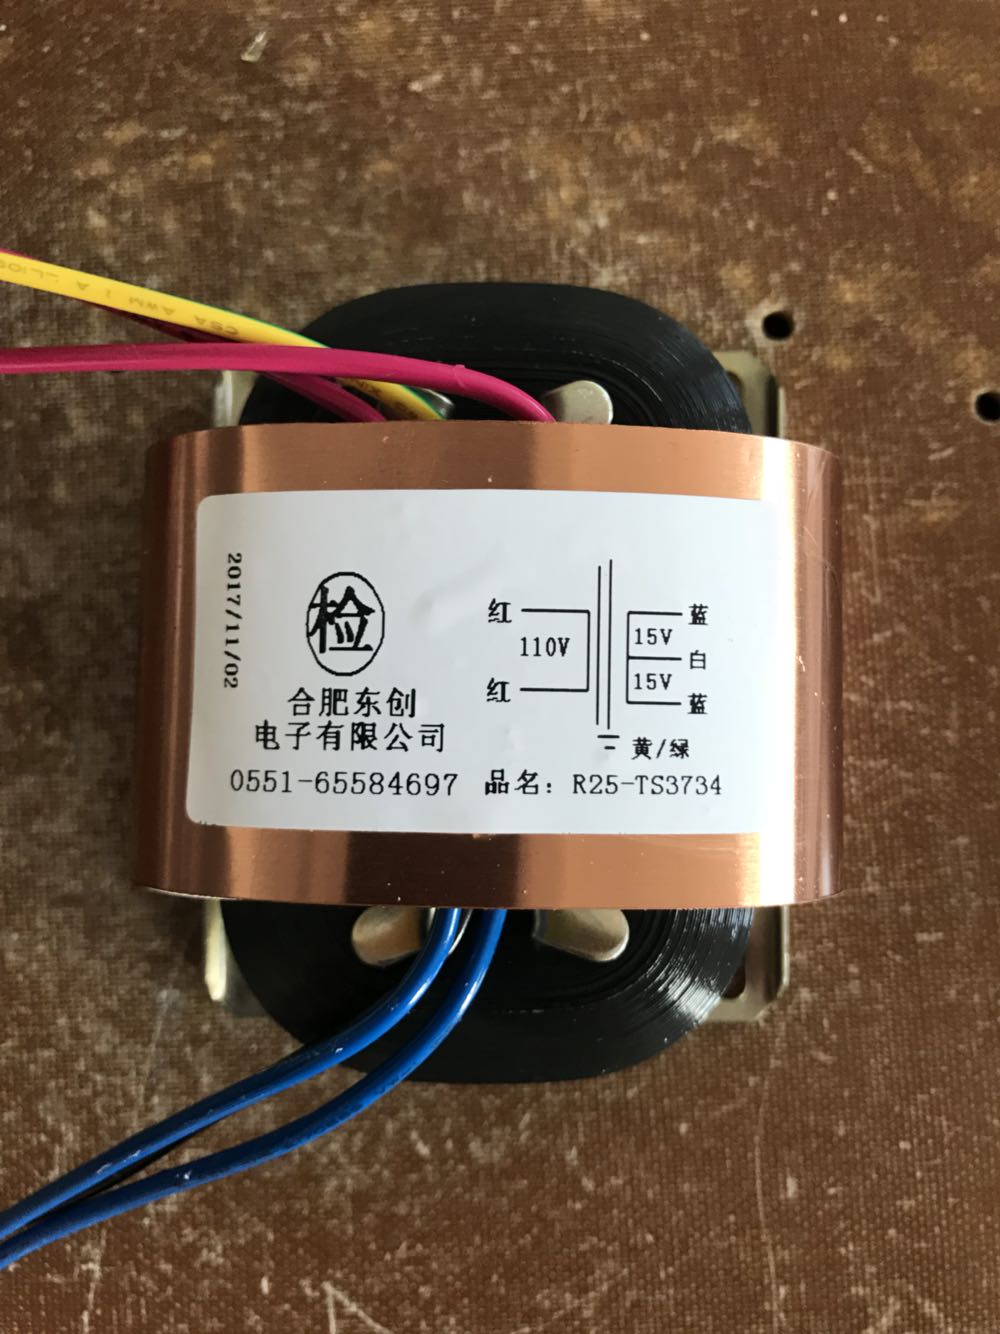 15V-0-15V 1A Transformer R Core <font><b>30VA</b></font> R25 custom transformer 110V with copper shield for Pre-decoder HIFI power supply image